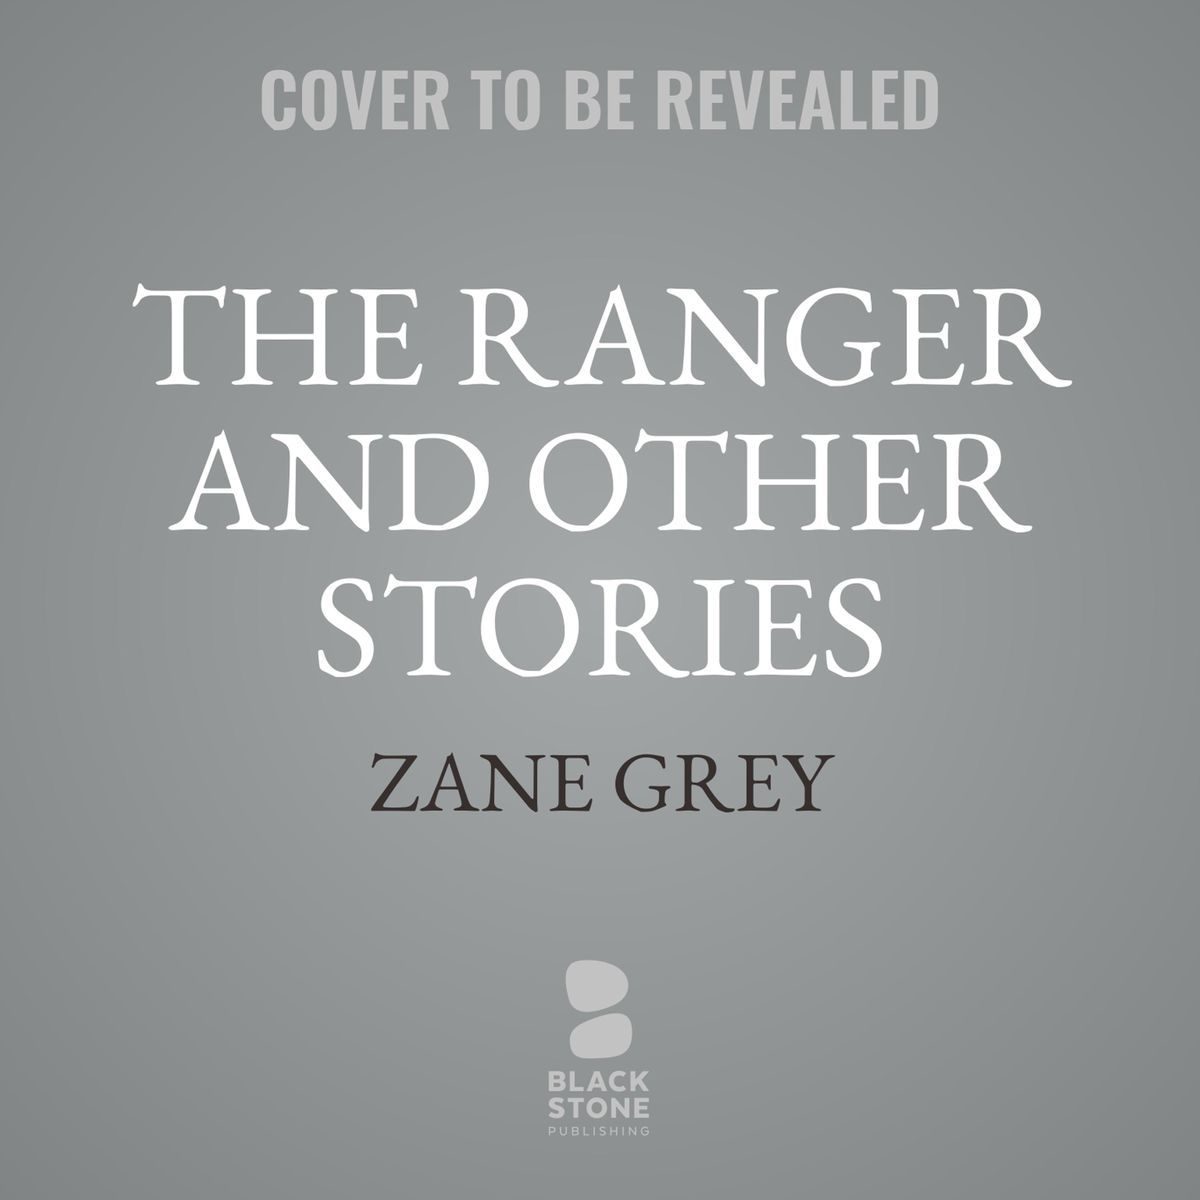 The Ranger, and Other Stories